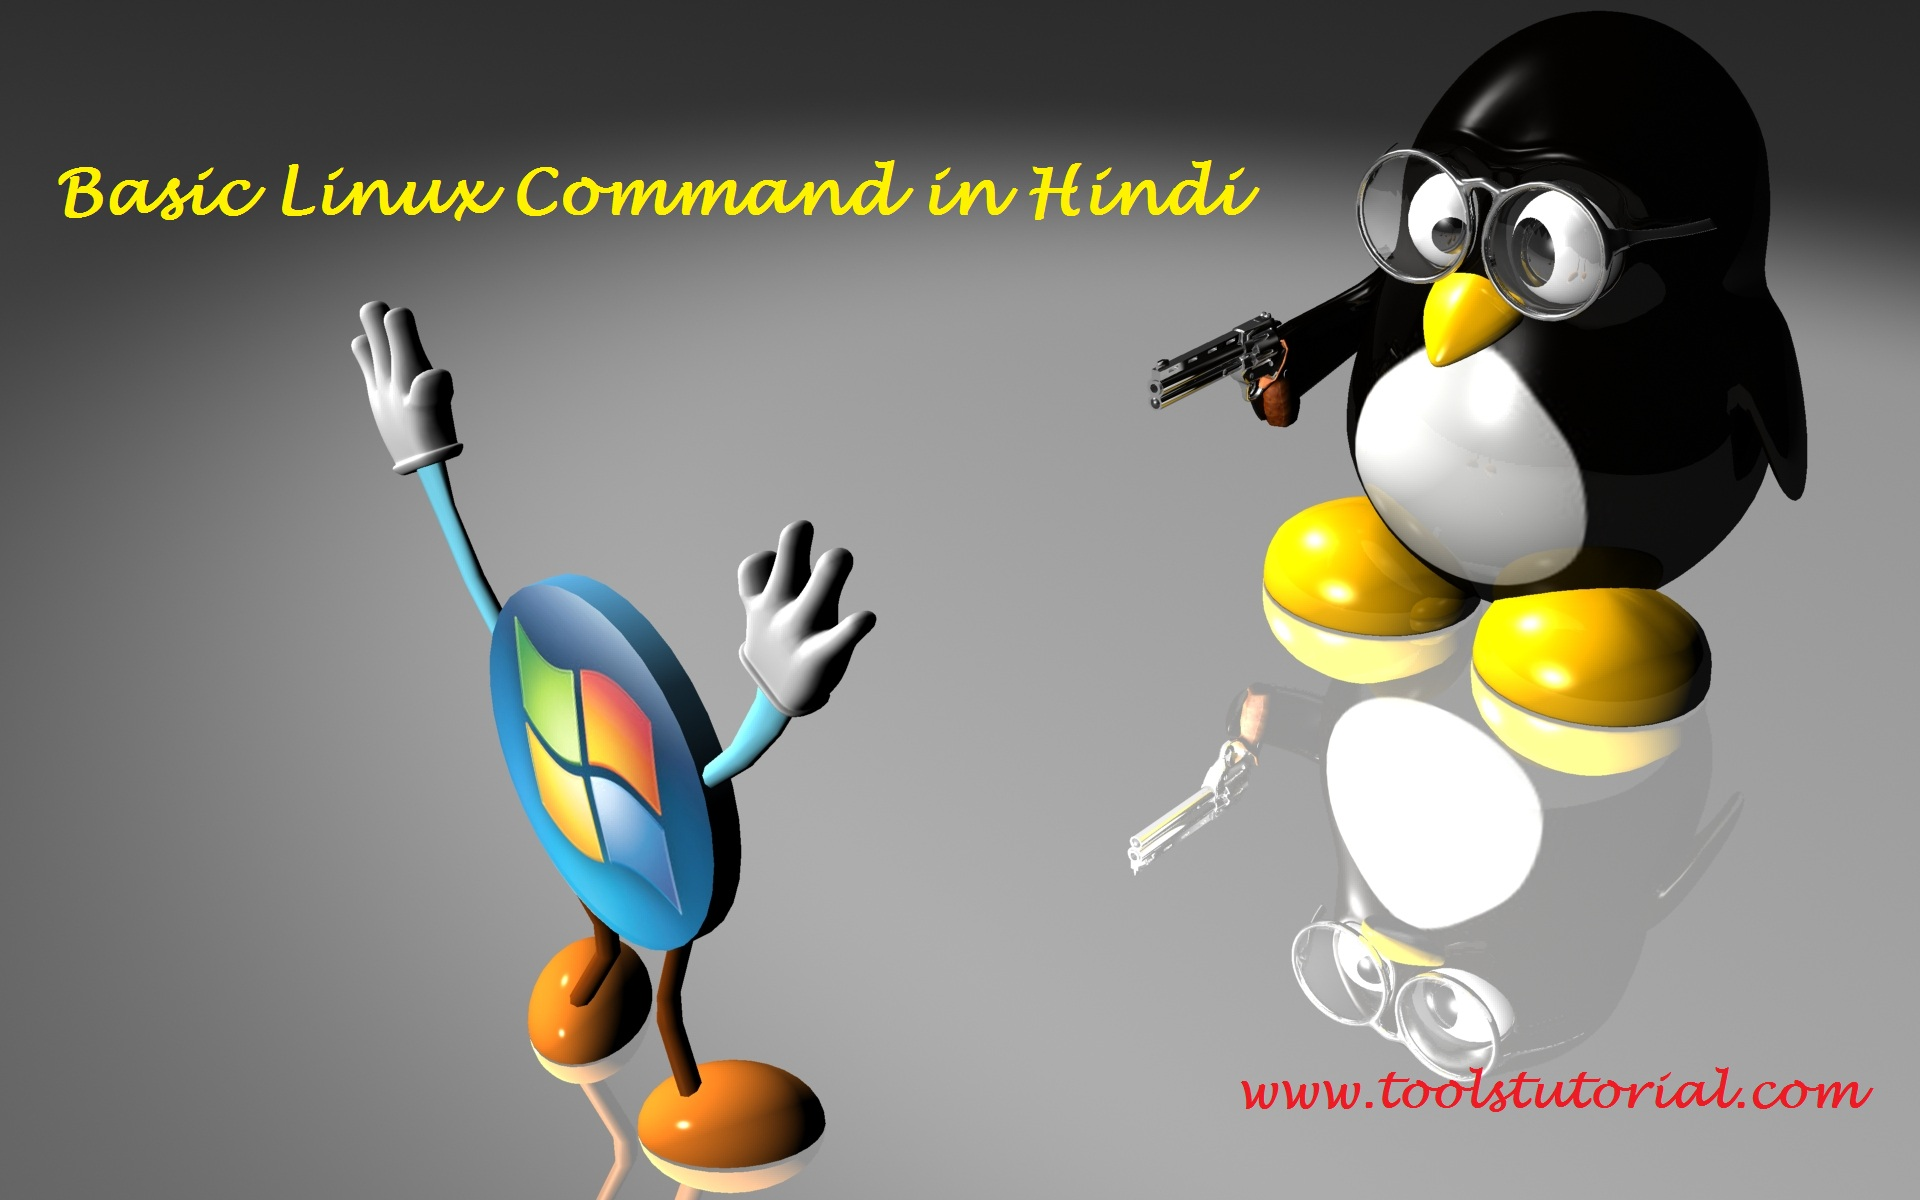 Basic Linux Commands in Hindi